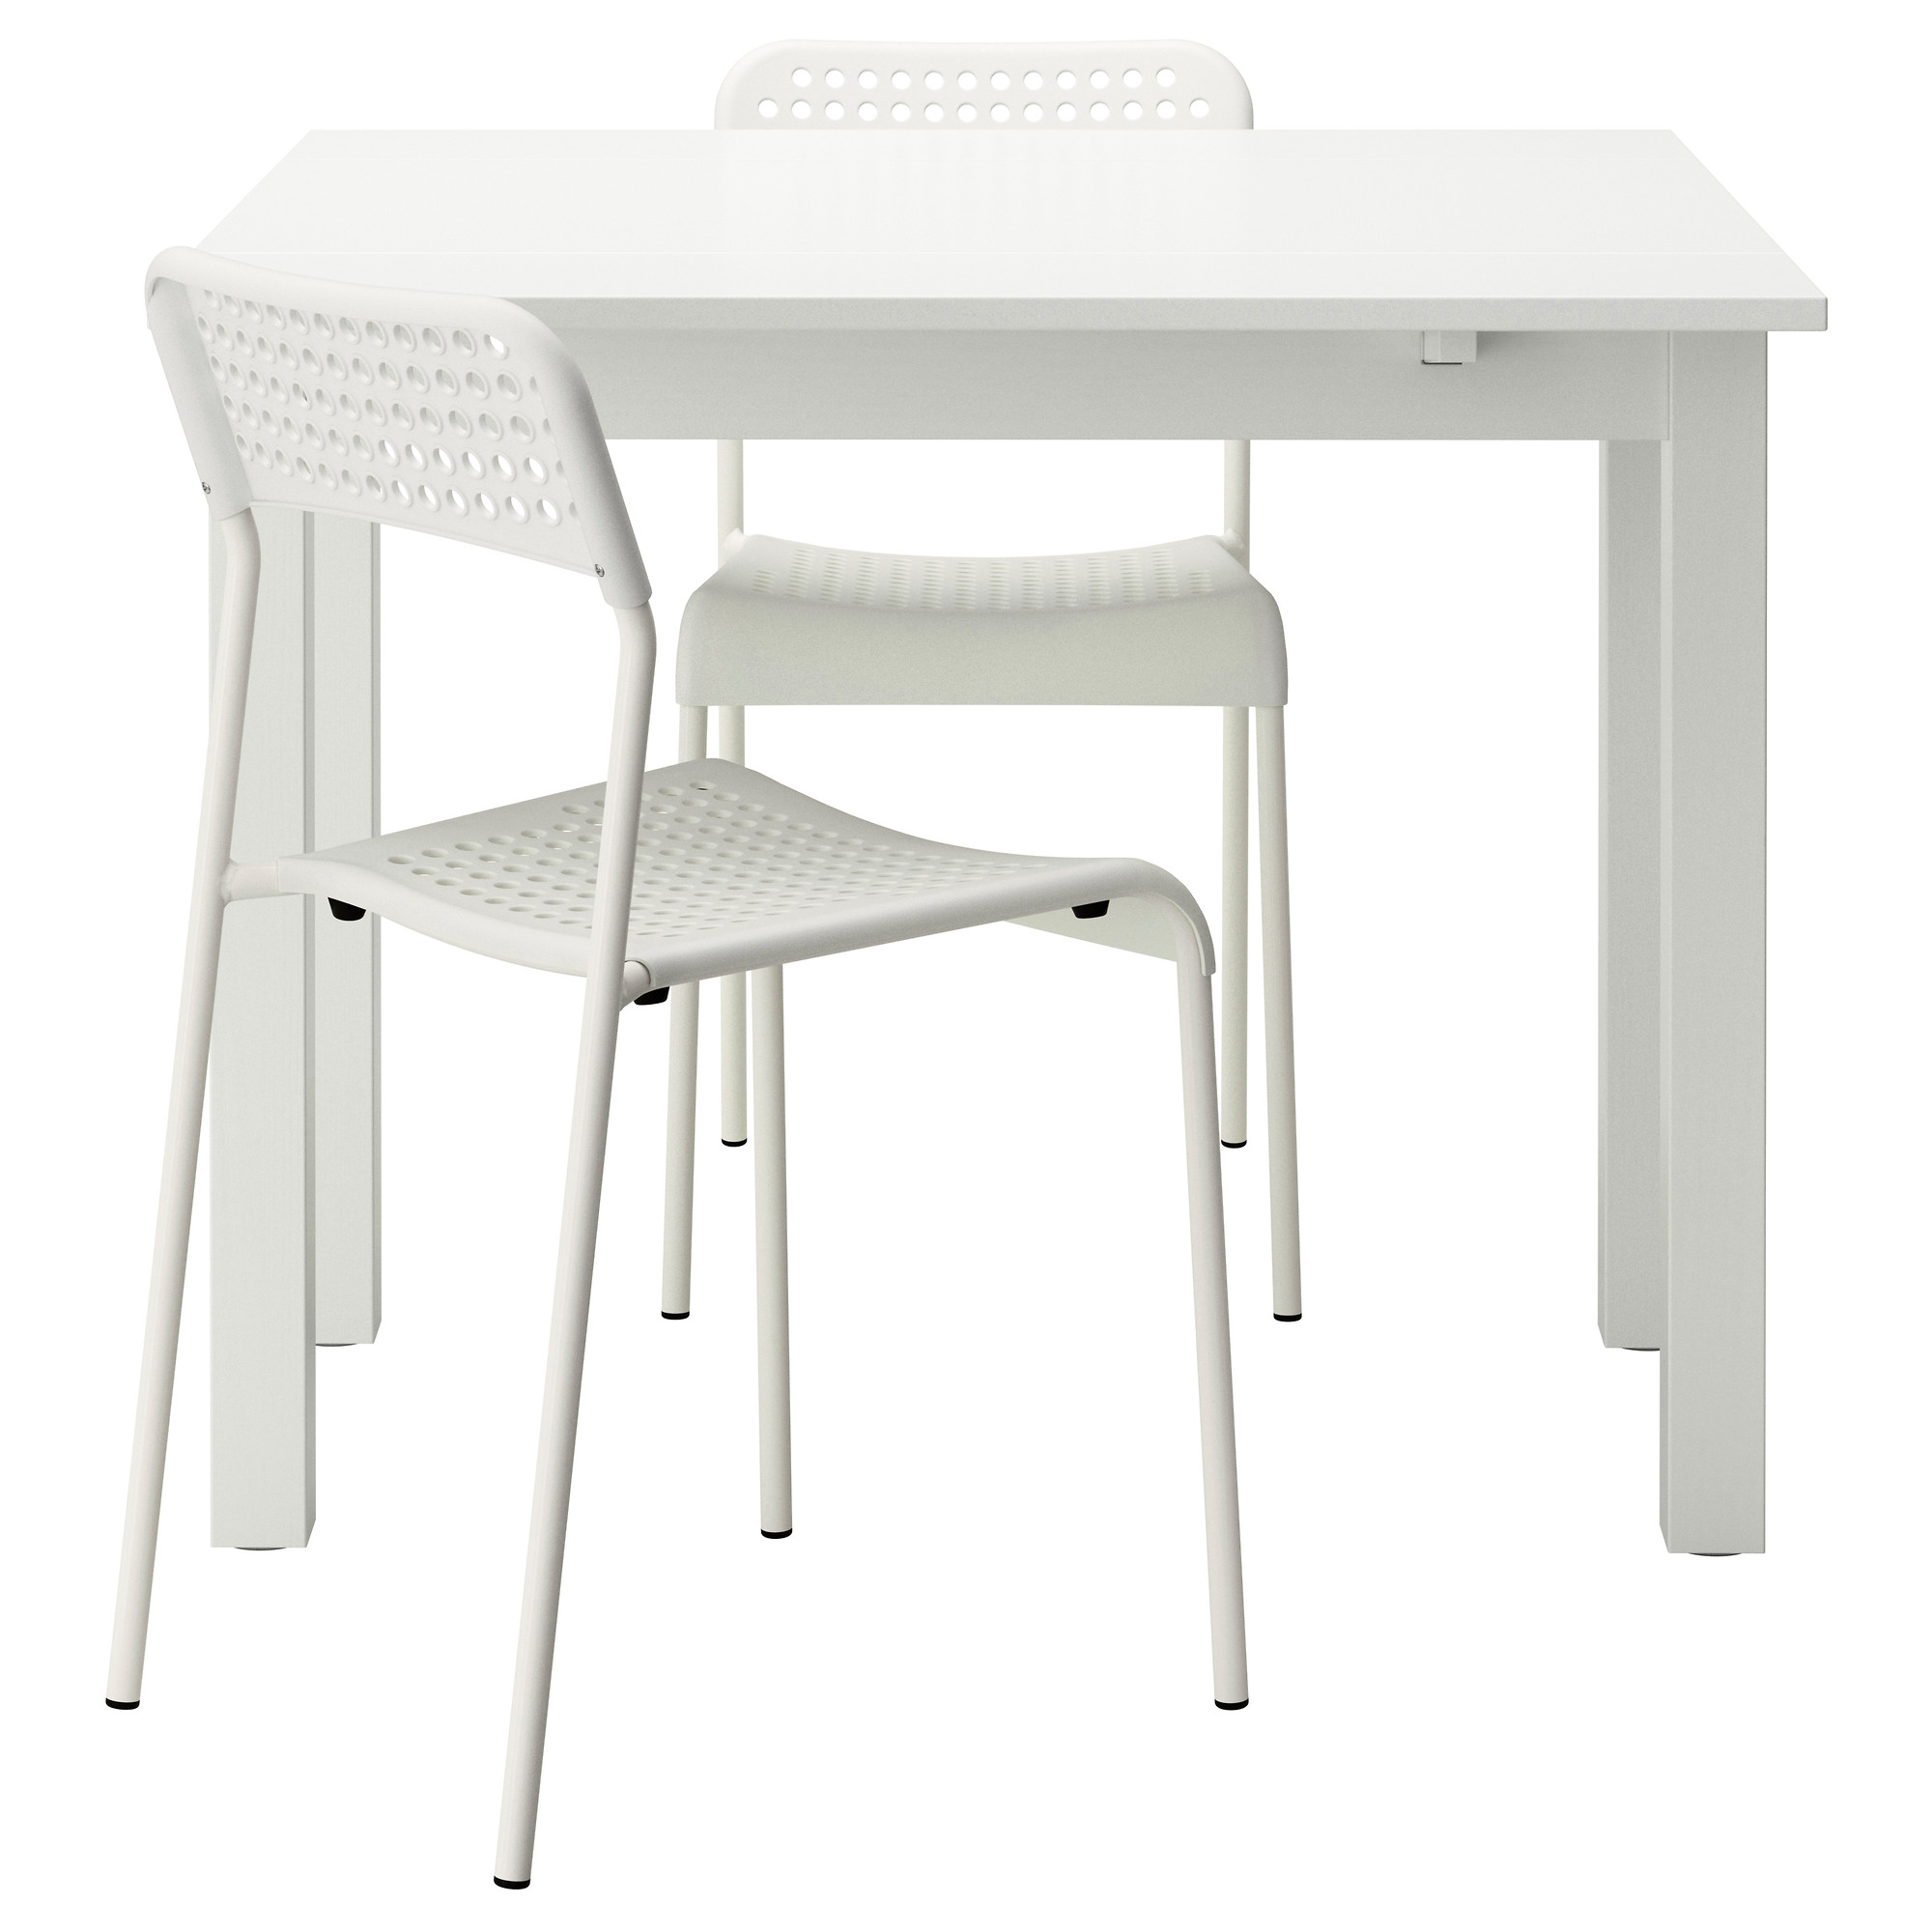 Table et chaise de cuisine ikea table chaise cuisine - Table de cuisine et chaise ...